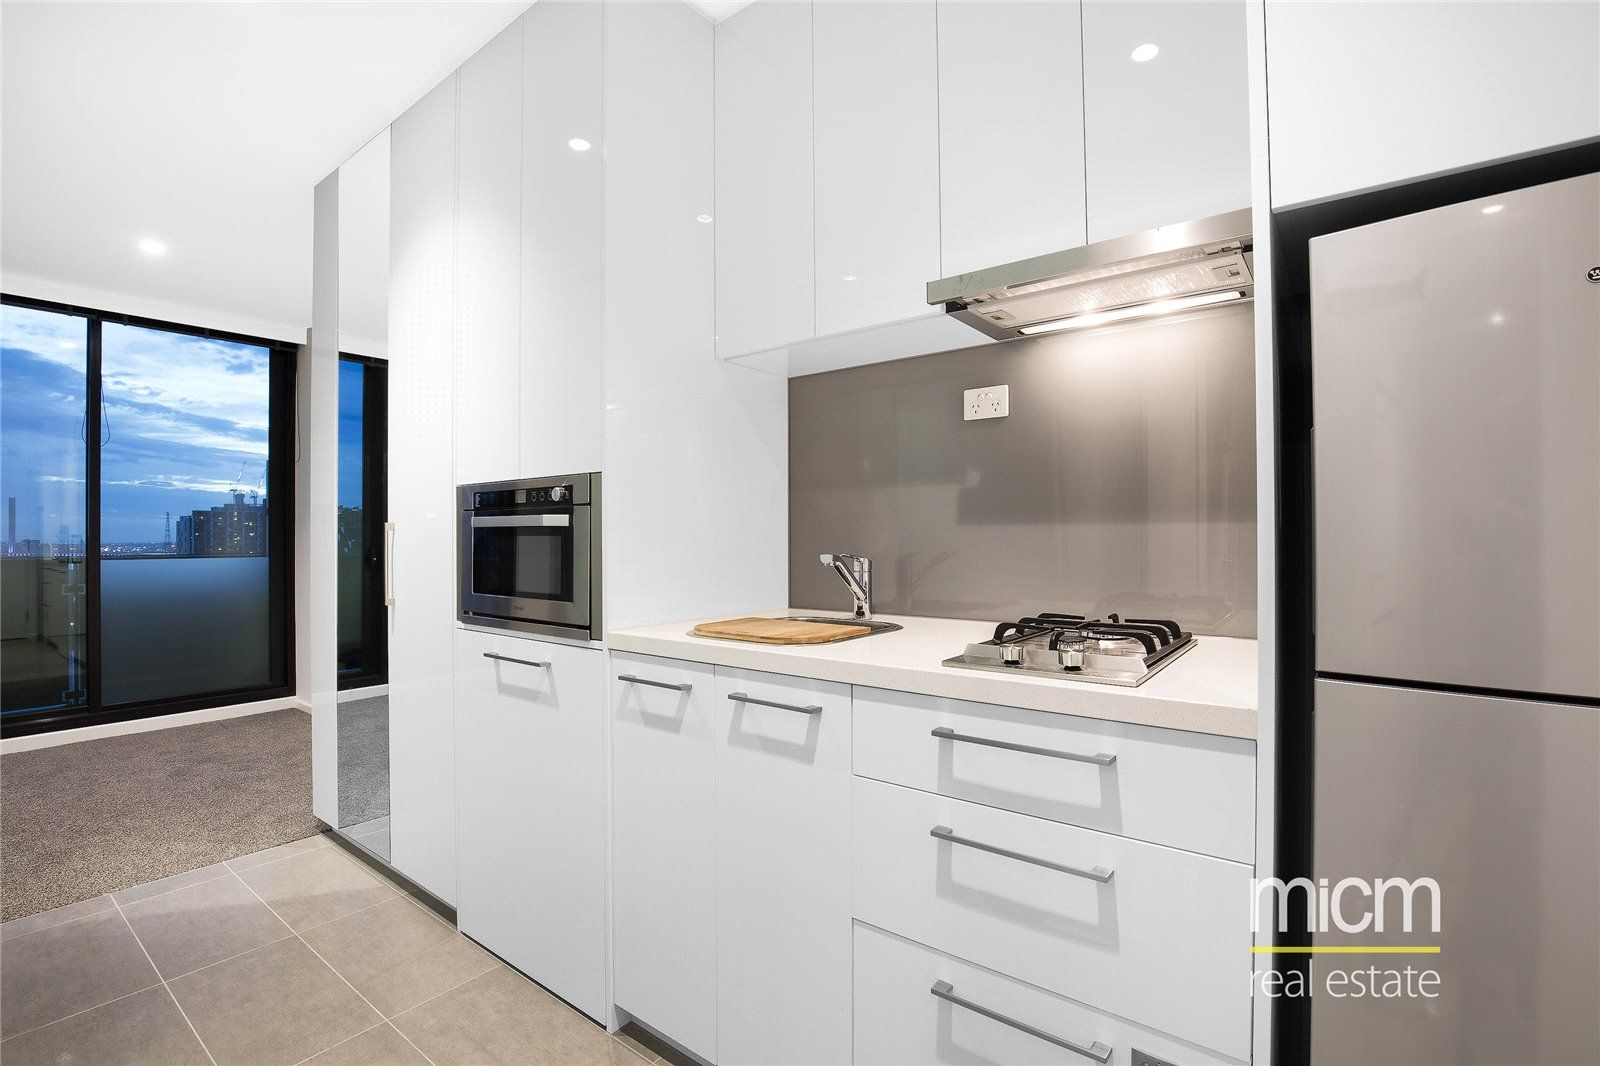 Melbourne One: Modern and Spacious One Bedroom Apartment!